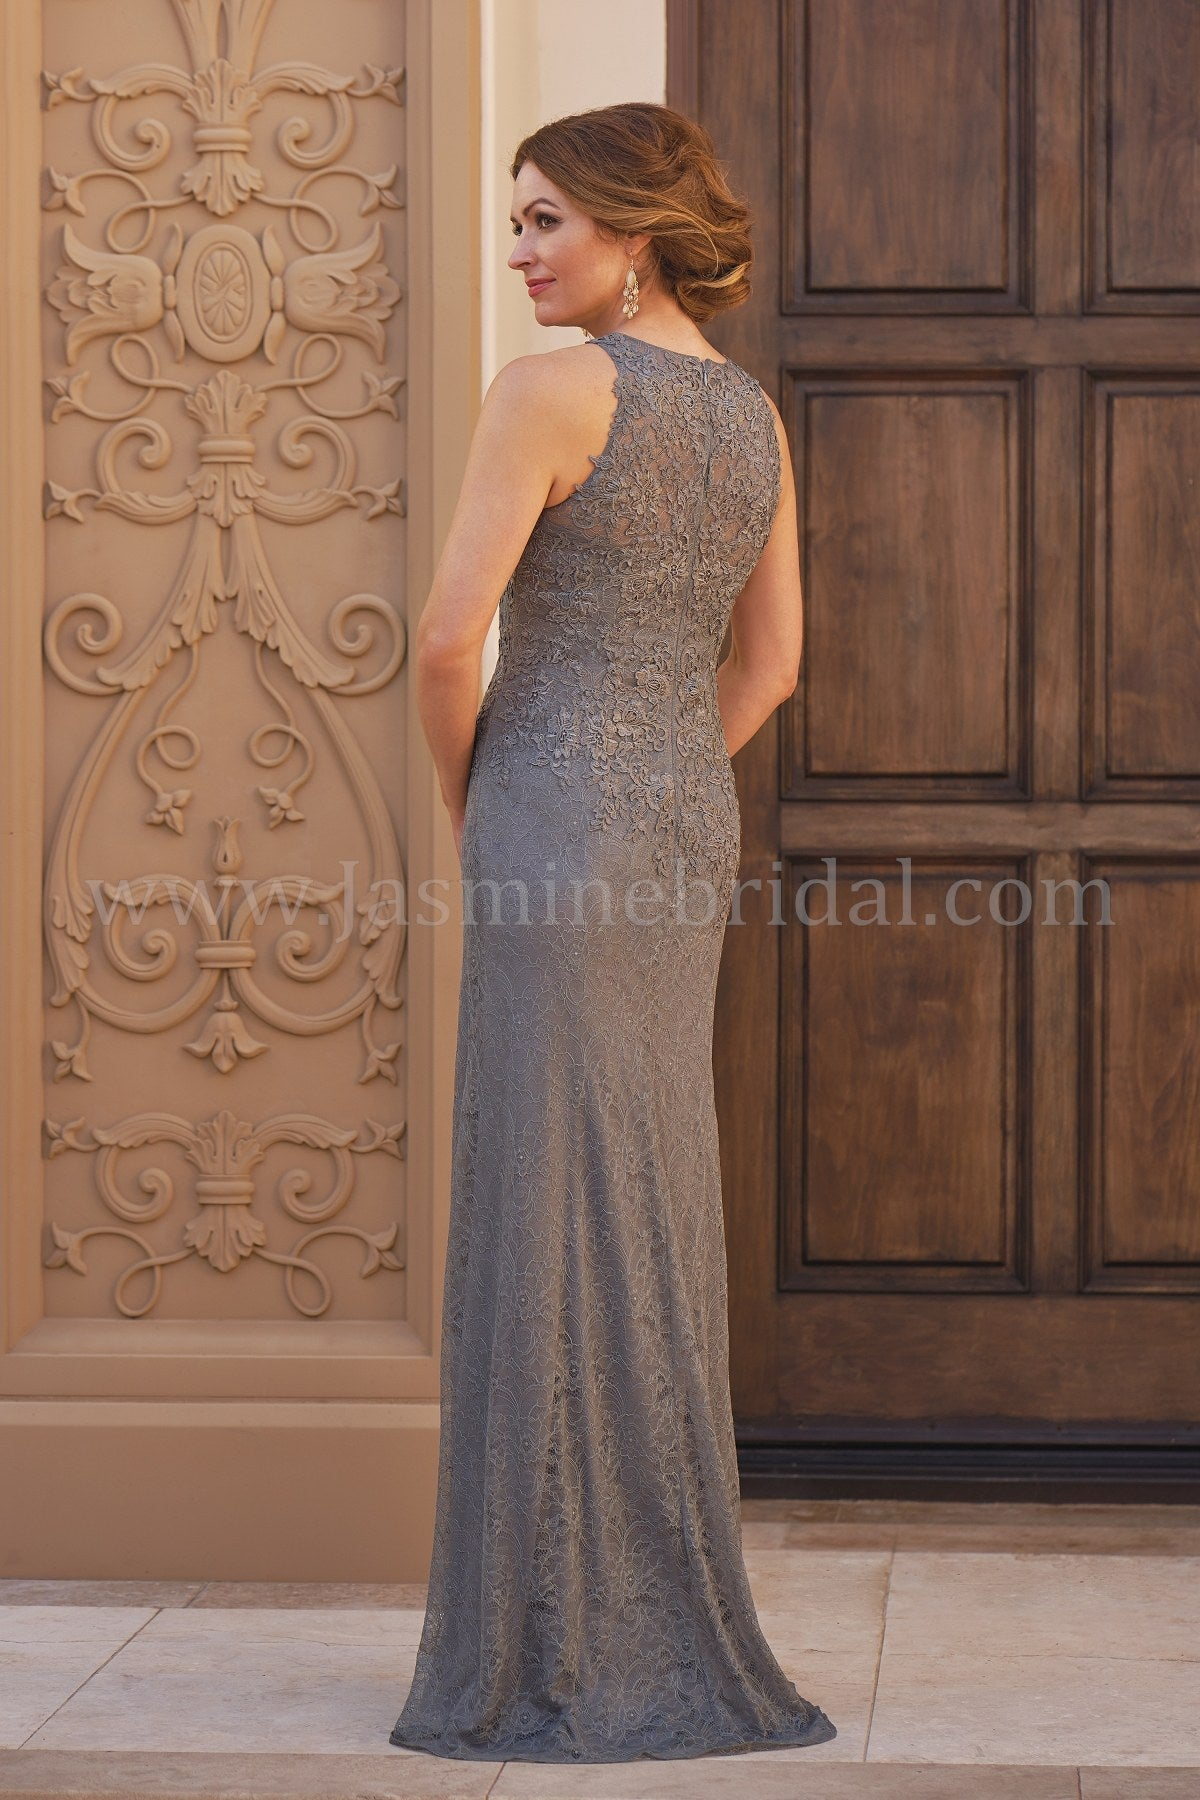 7ca46f4b2b8 ... Jade Couture K208060 Allover Lace Gown with Jewel Neckline ...